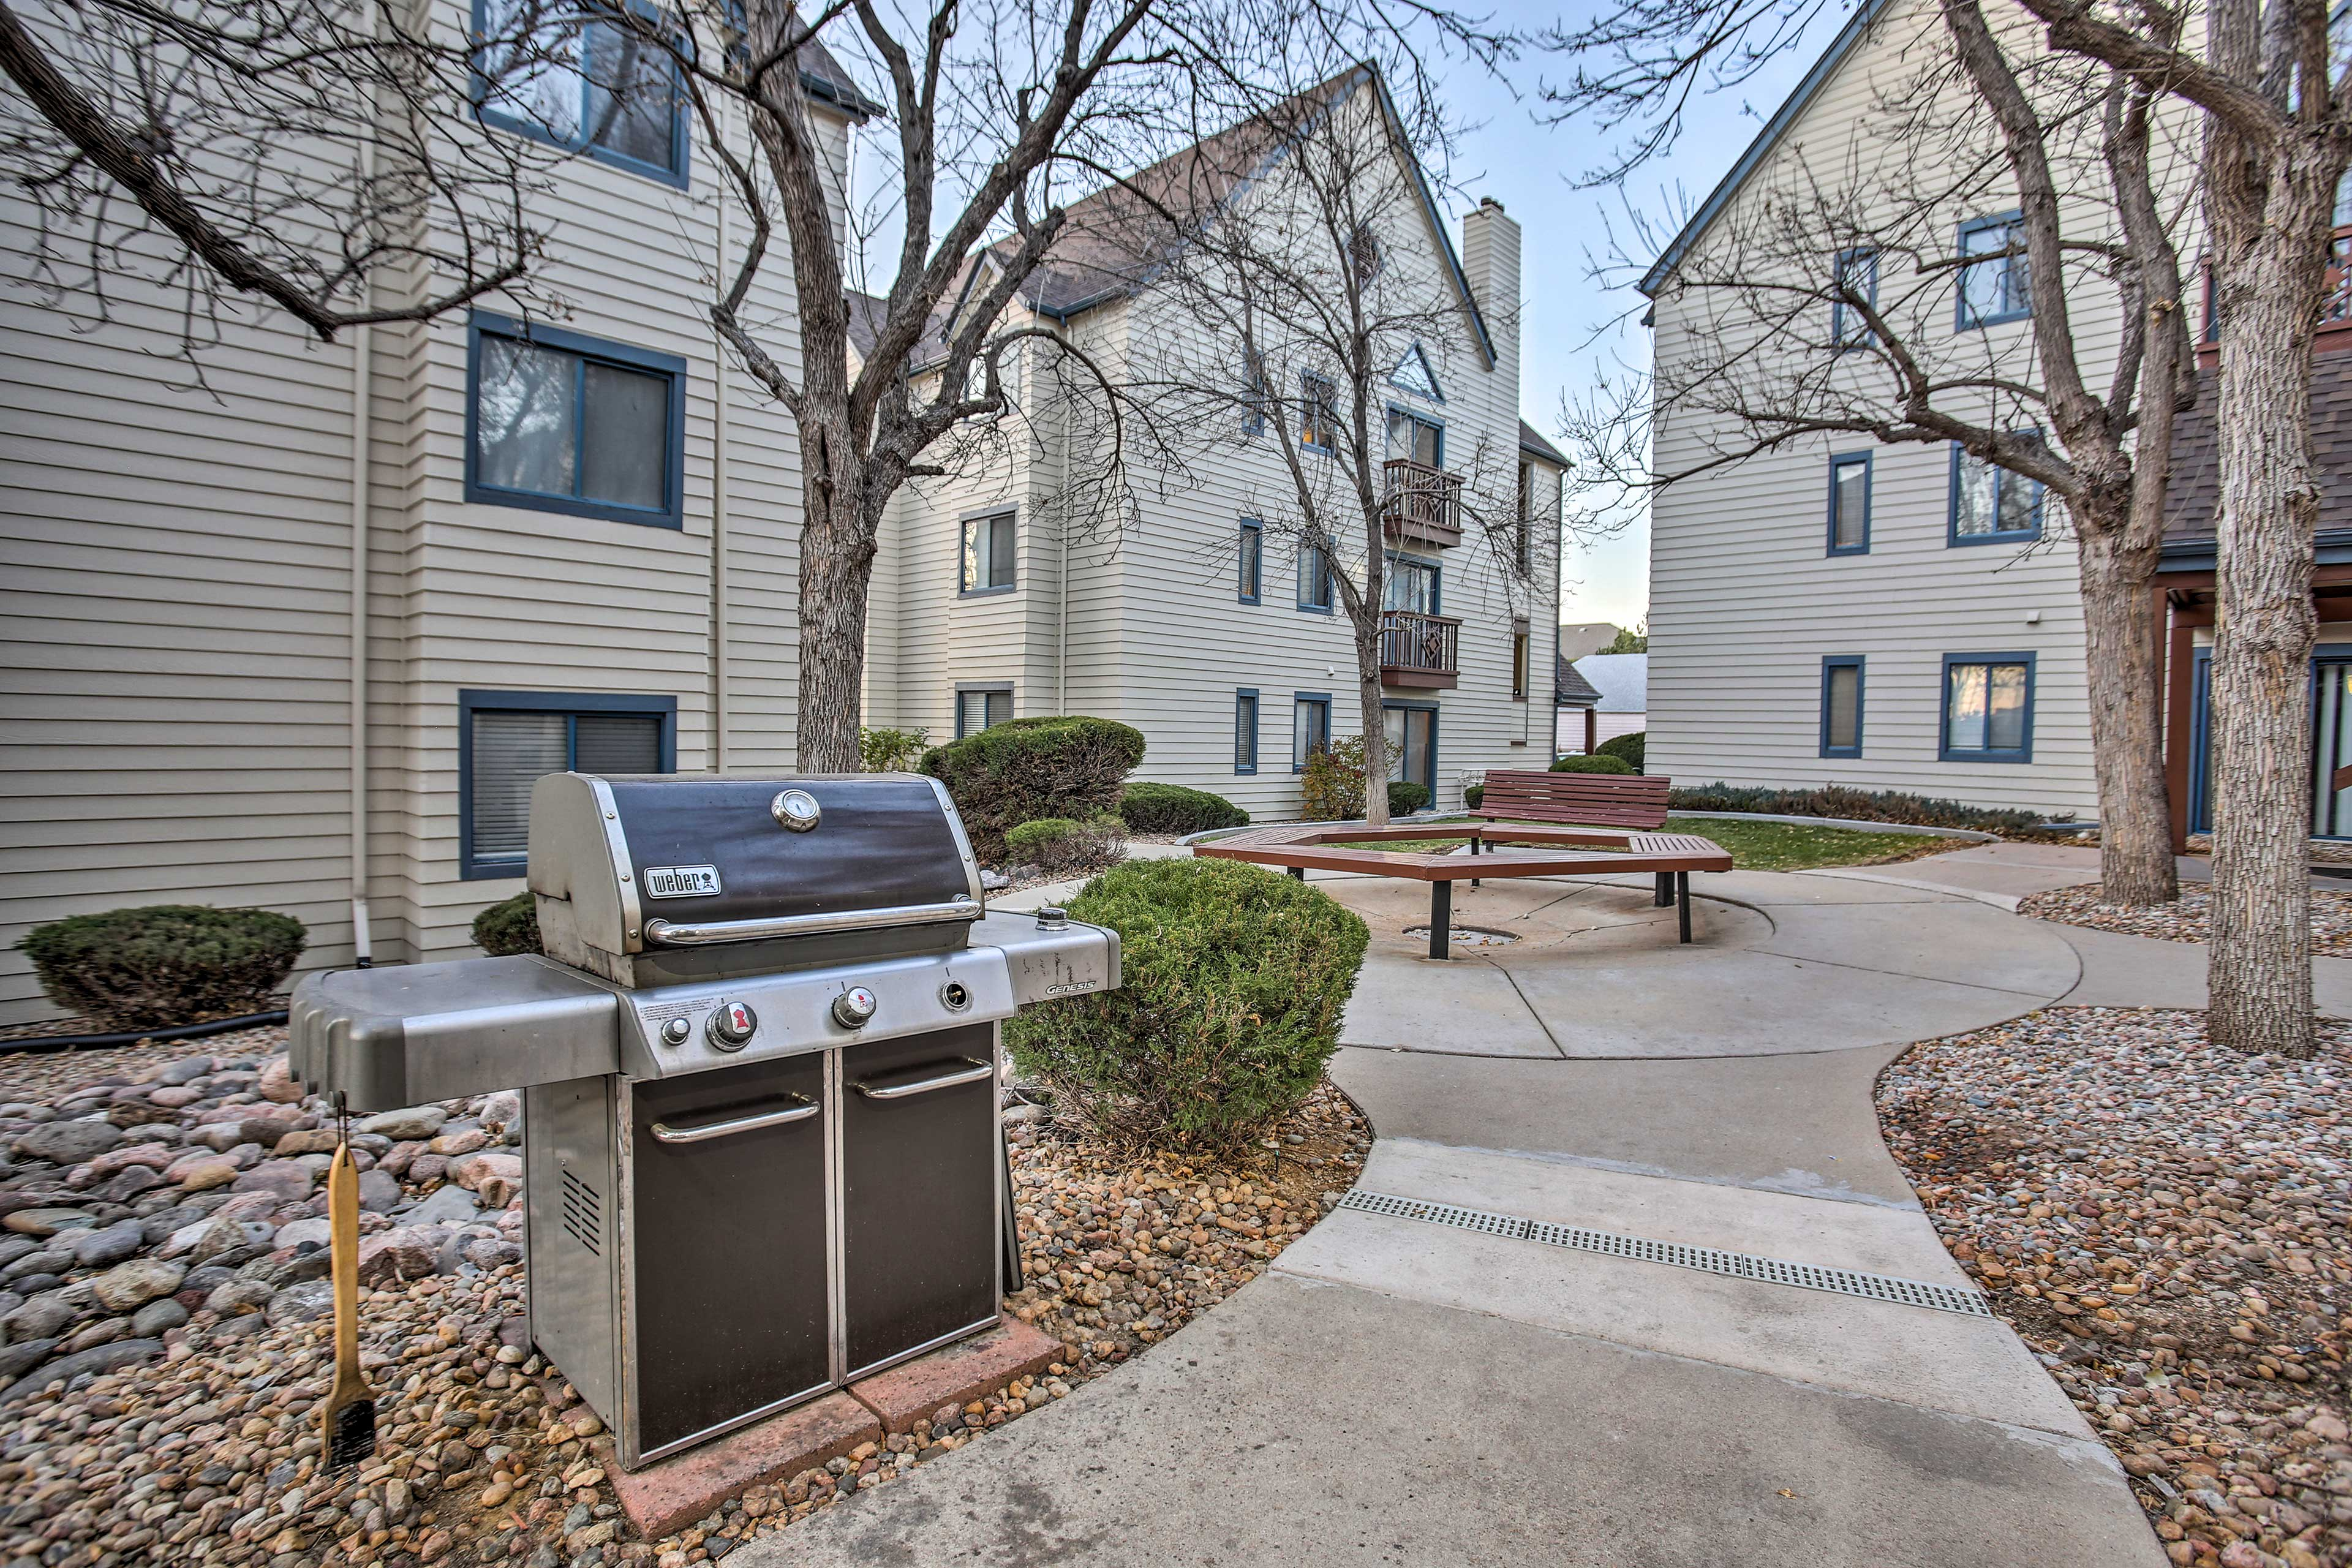 There are multiple gas grills available throughout the community.